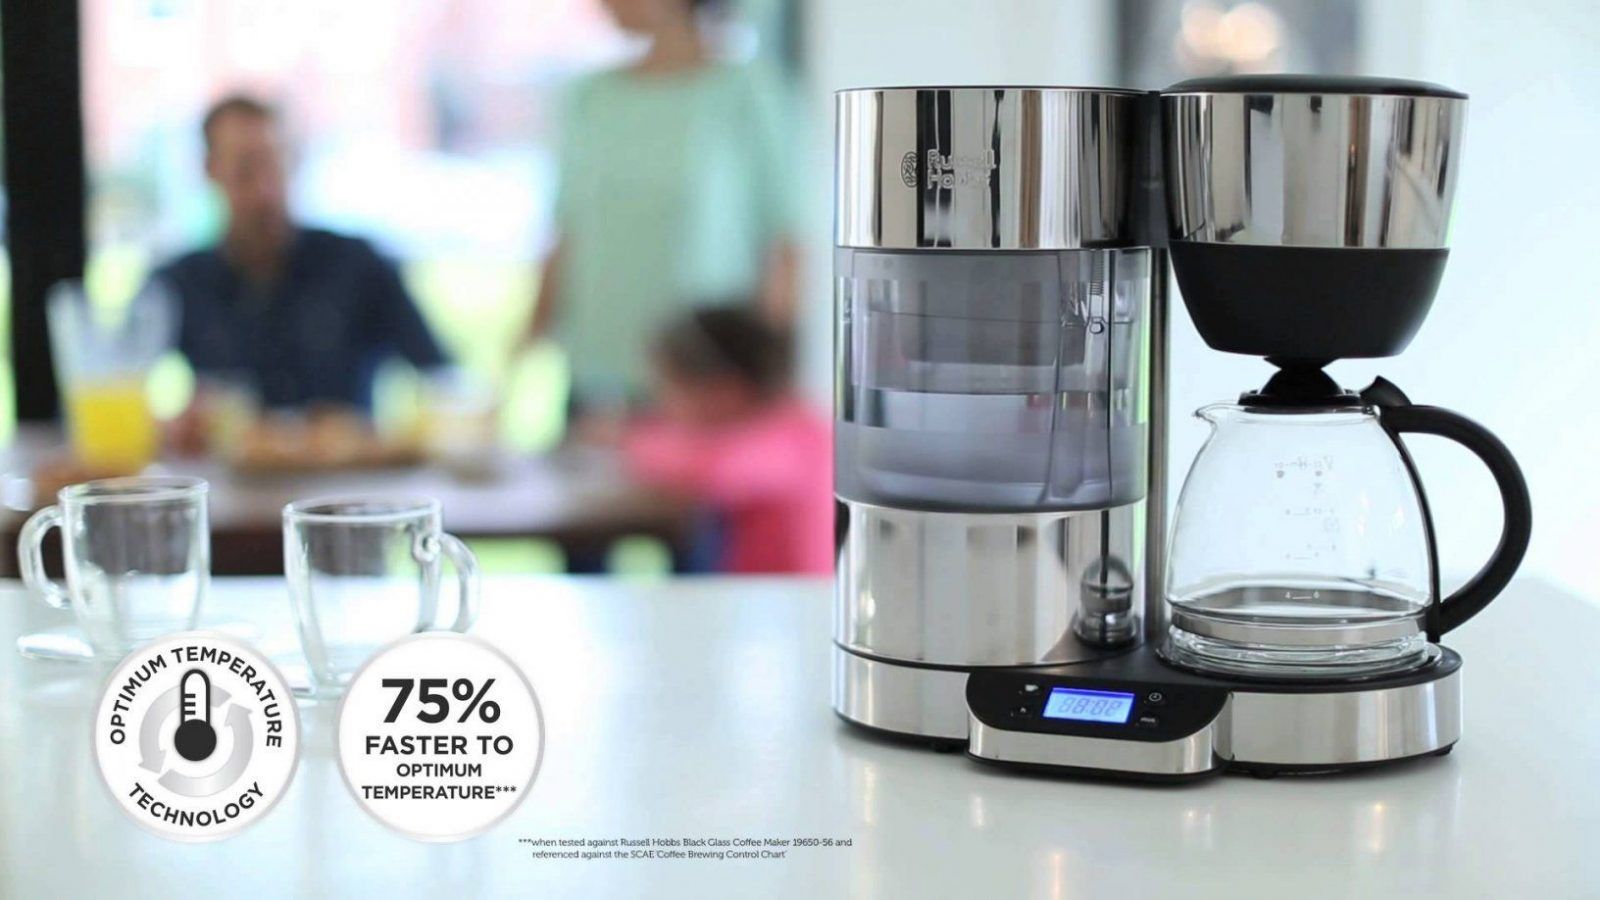 Russell Hobbs Uk  Purity Brita Filter Coffee Maker  Youtube von Russell Hobbs Kaffeemaschine Glass Line Bild